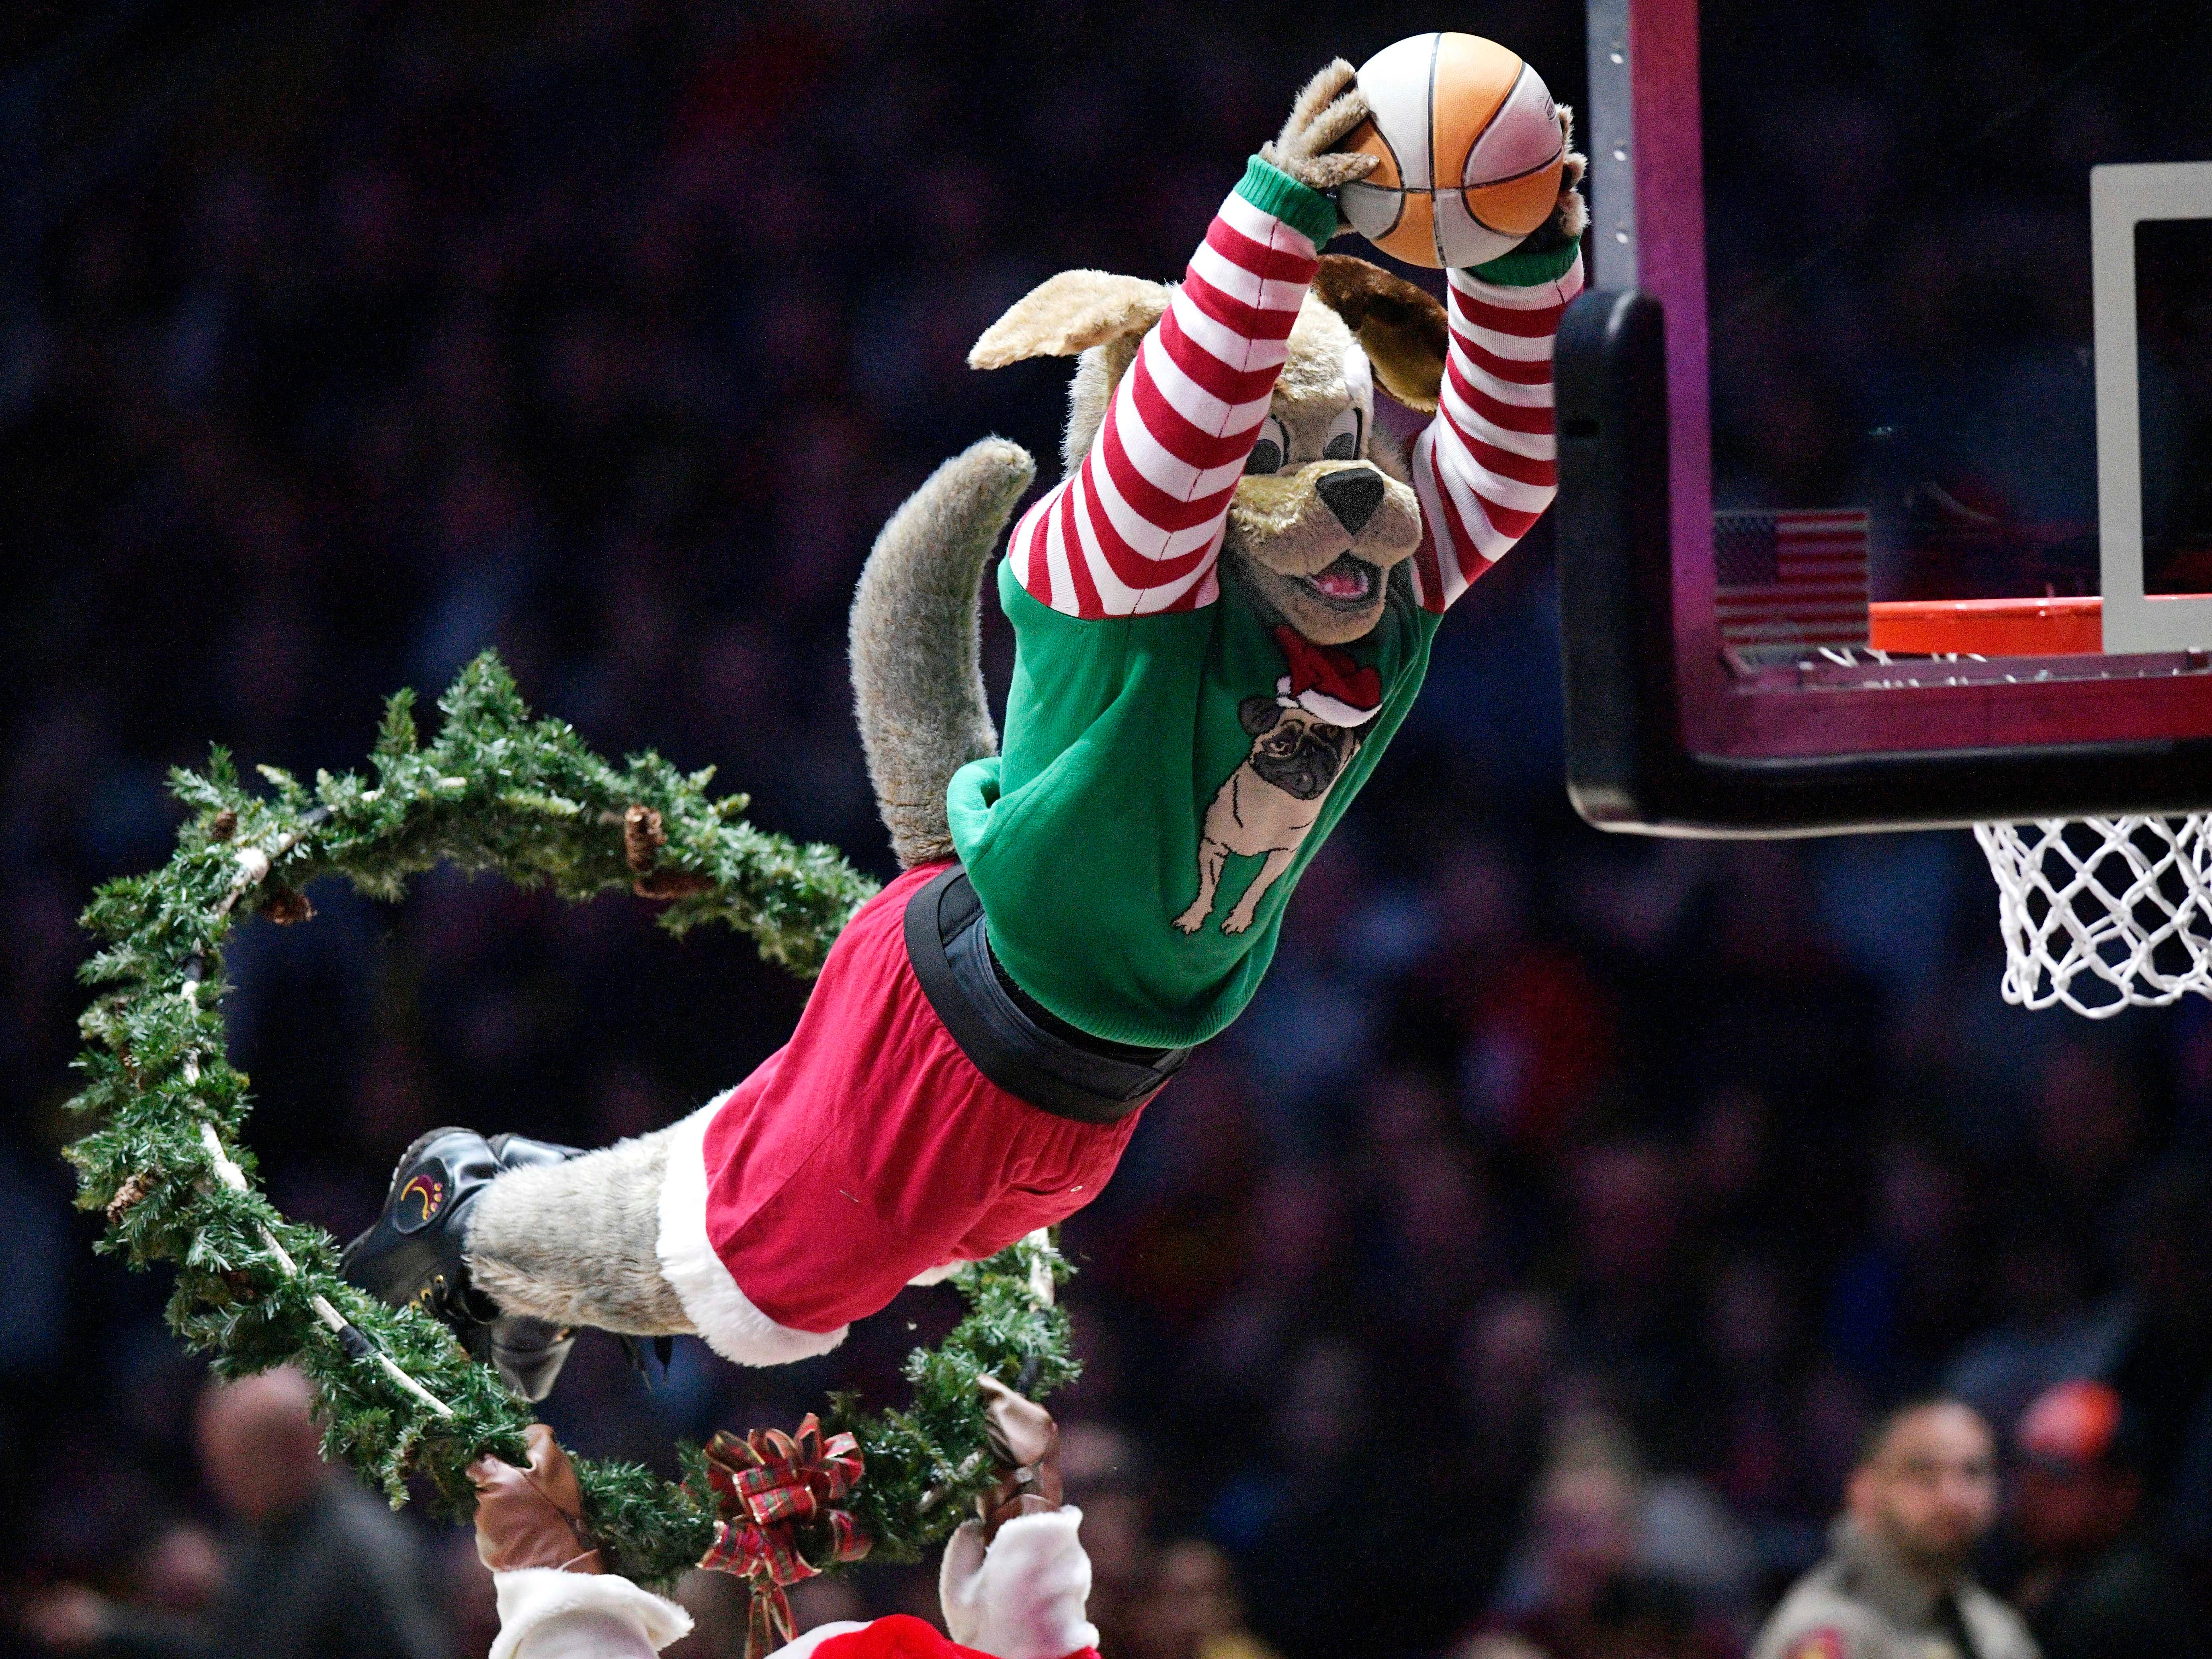 Dec. 16: Cavaliers mascot Moondog leaps through a wreath for a festive slam.